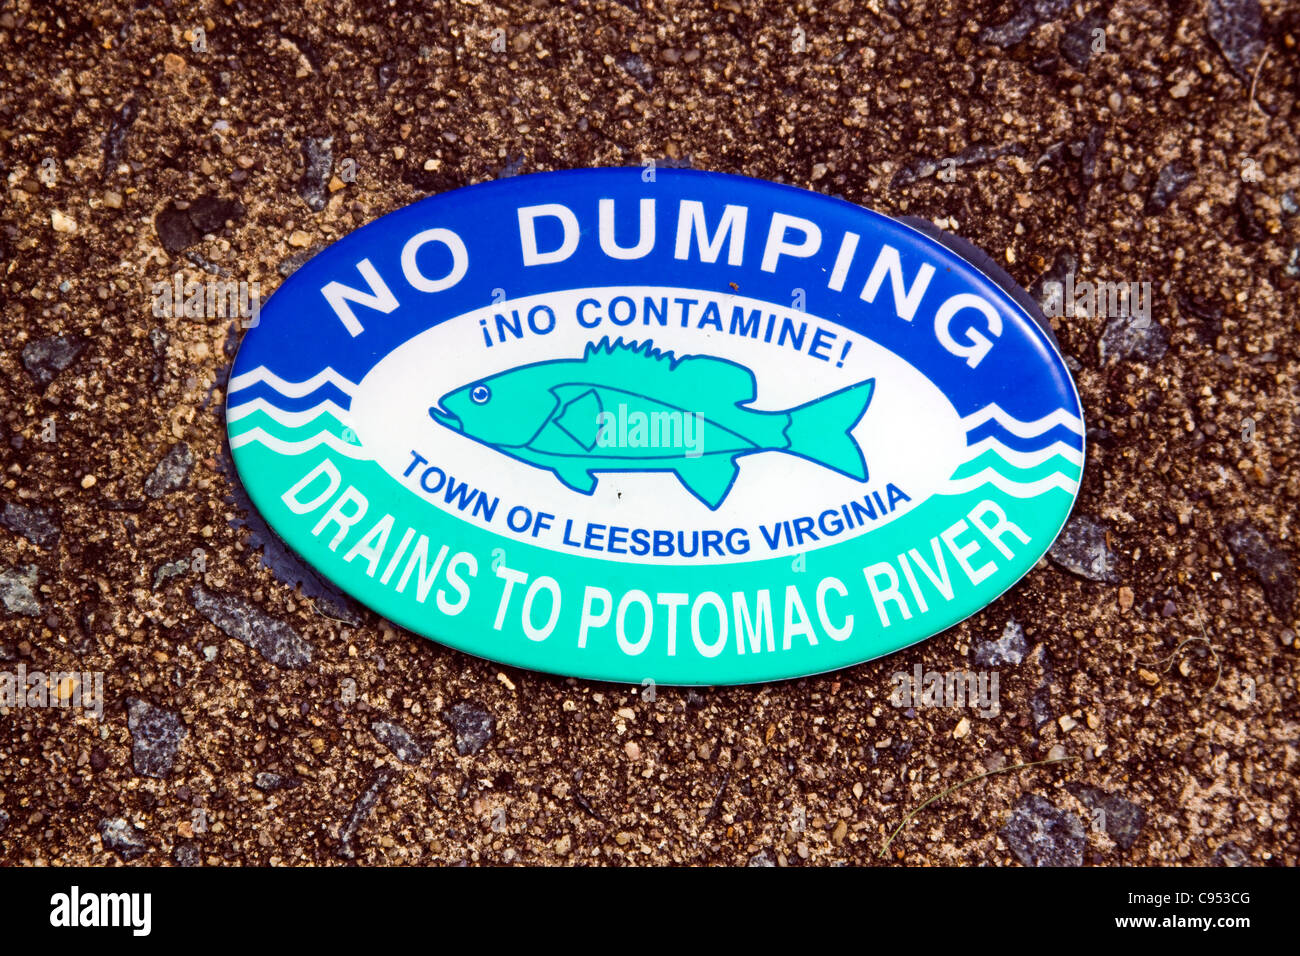 Town of Leesburg Virginia No Dumping Drains to Potomac River sign on top of a storm water drainage catch basin inlet - Stock Image